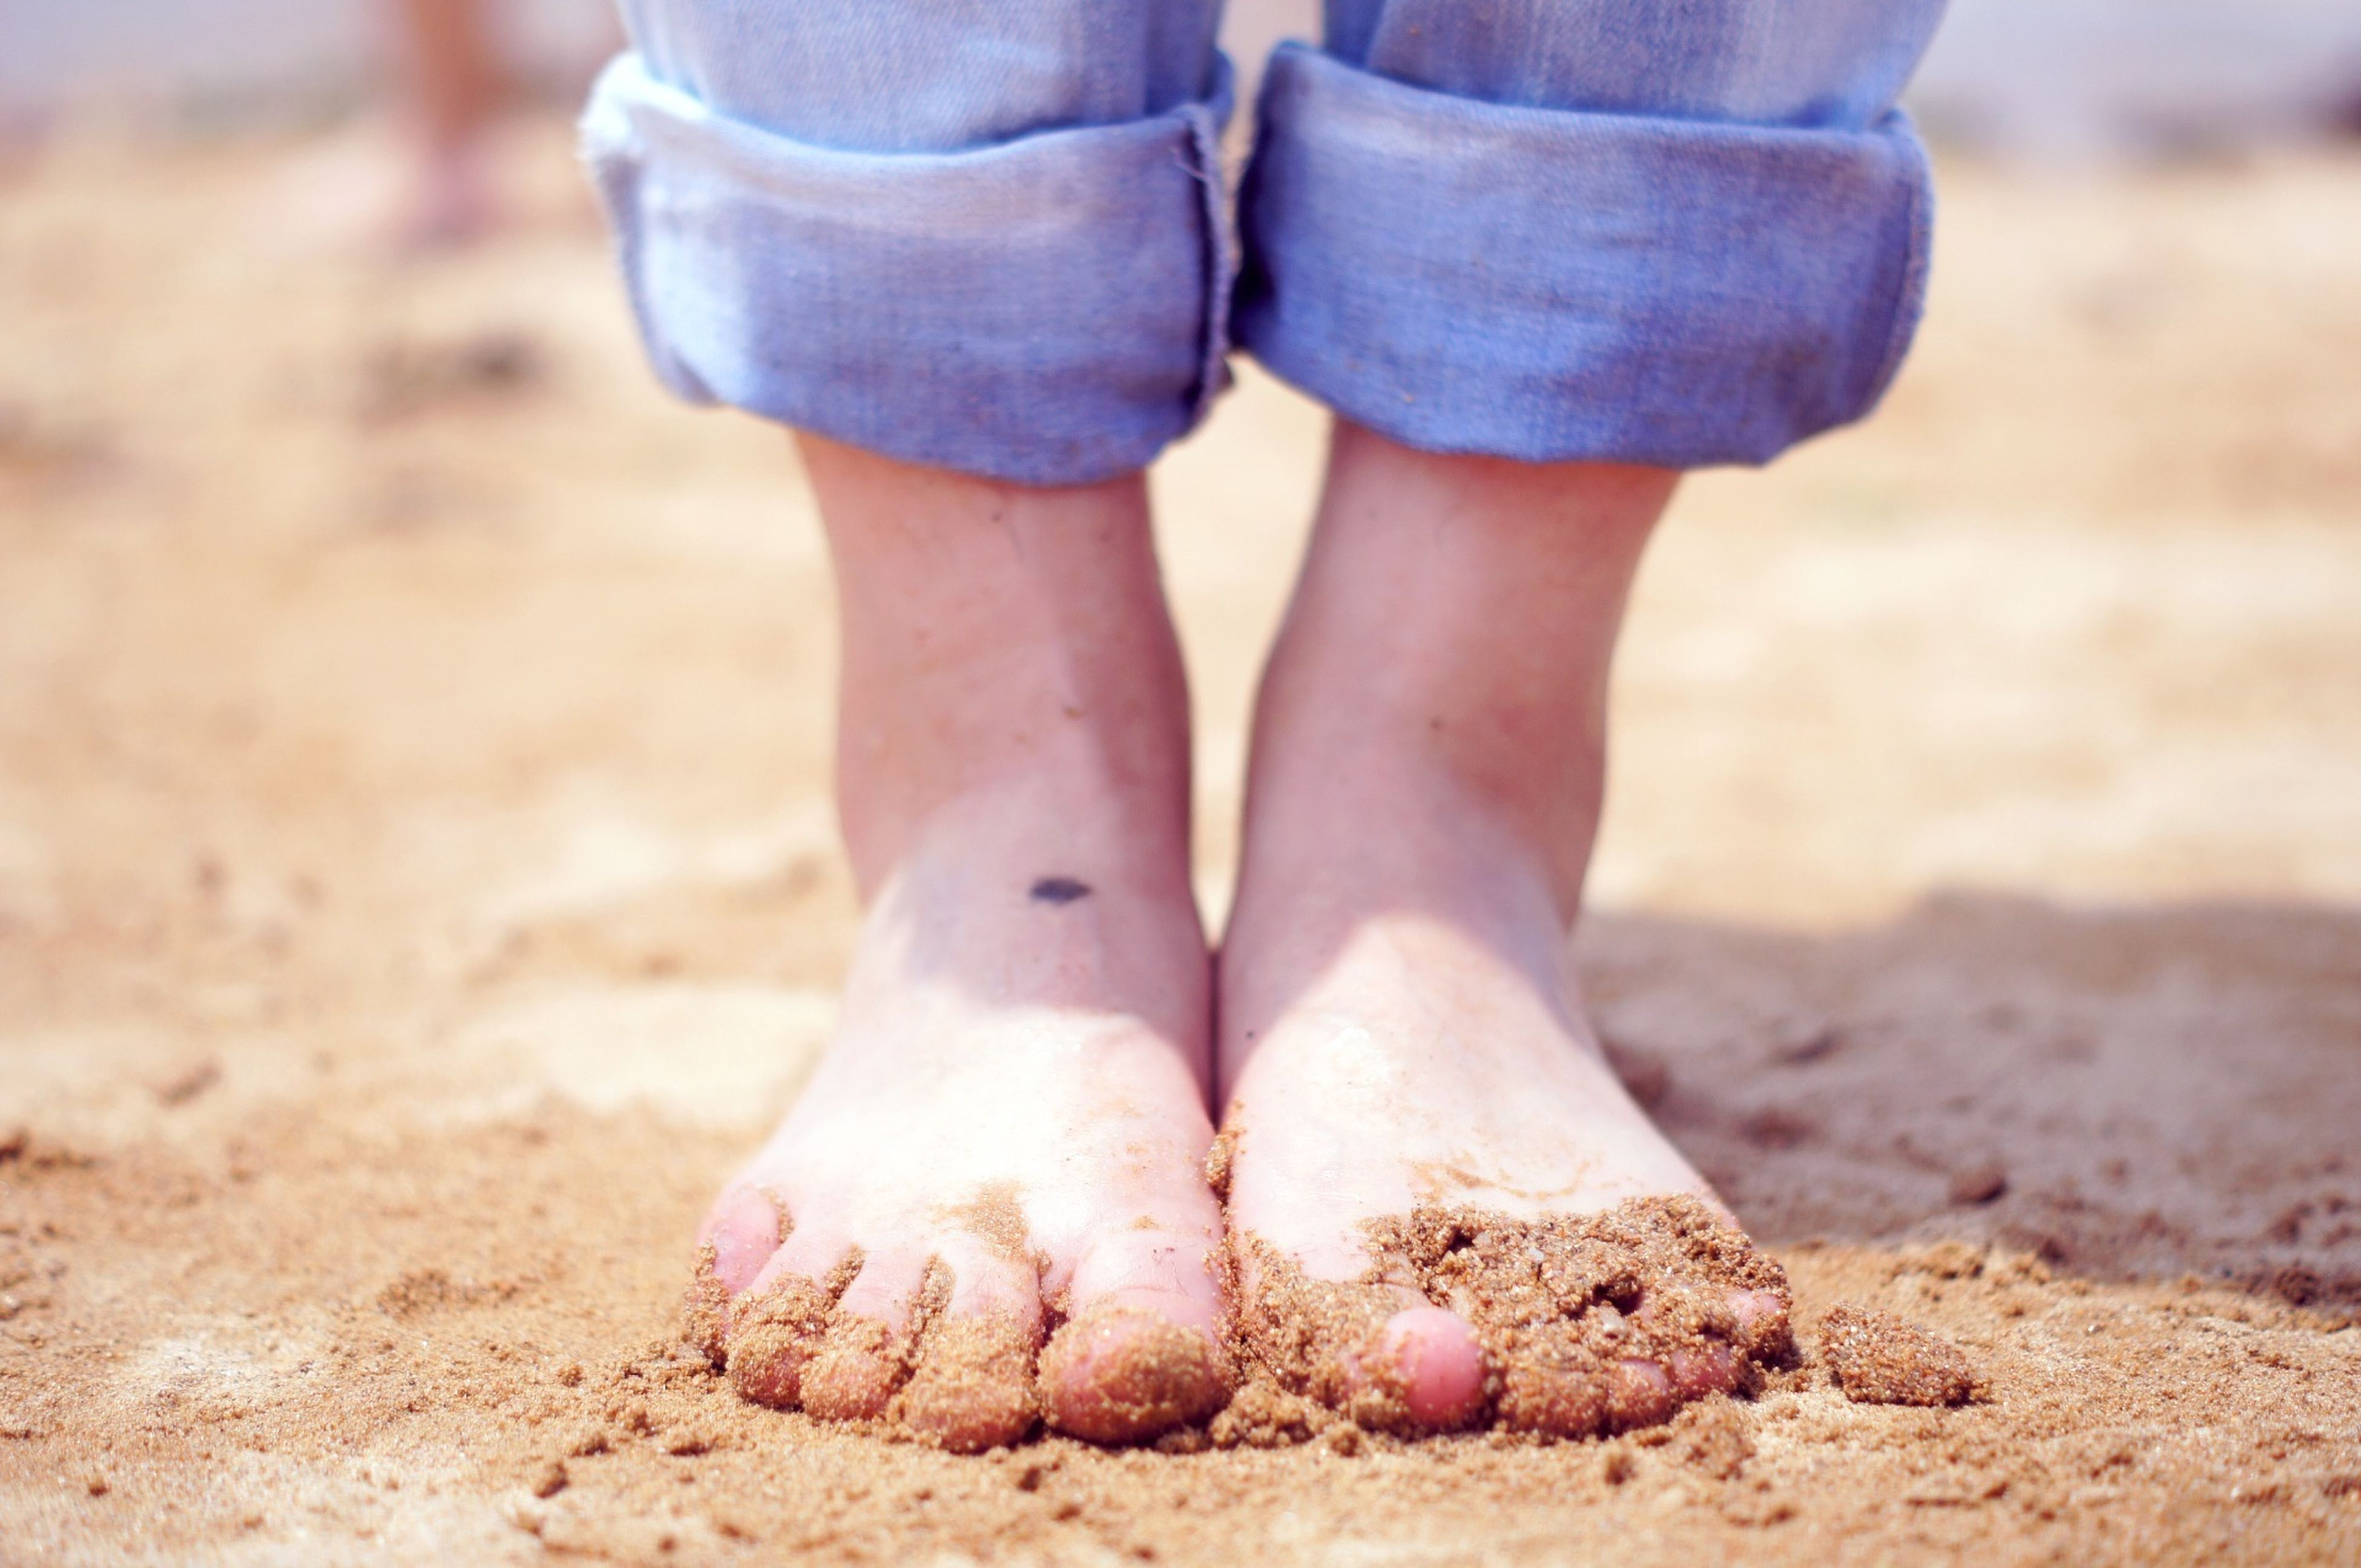 sand, beach, low section, lifestyles, barefoot, leisure activity, person, focus on foreground, shore, relaxation, vacations, day, close-up, sunlight, outdoors